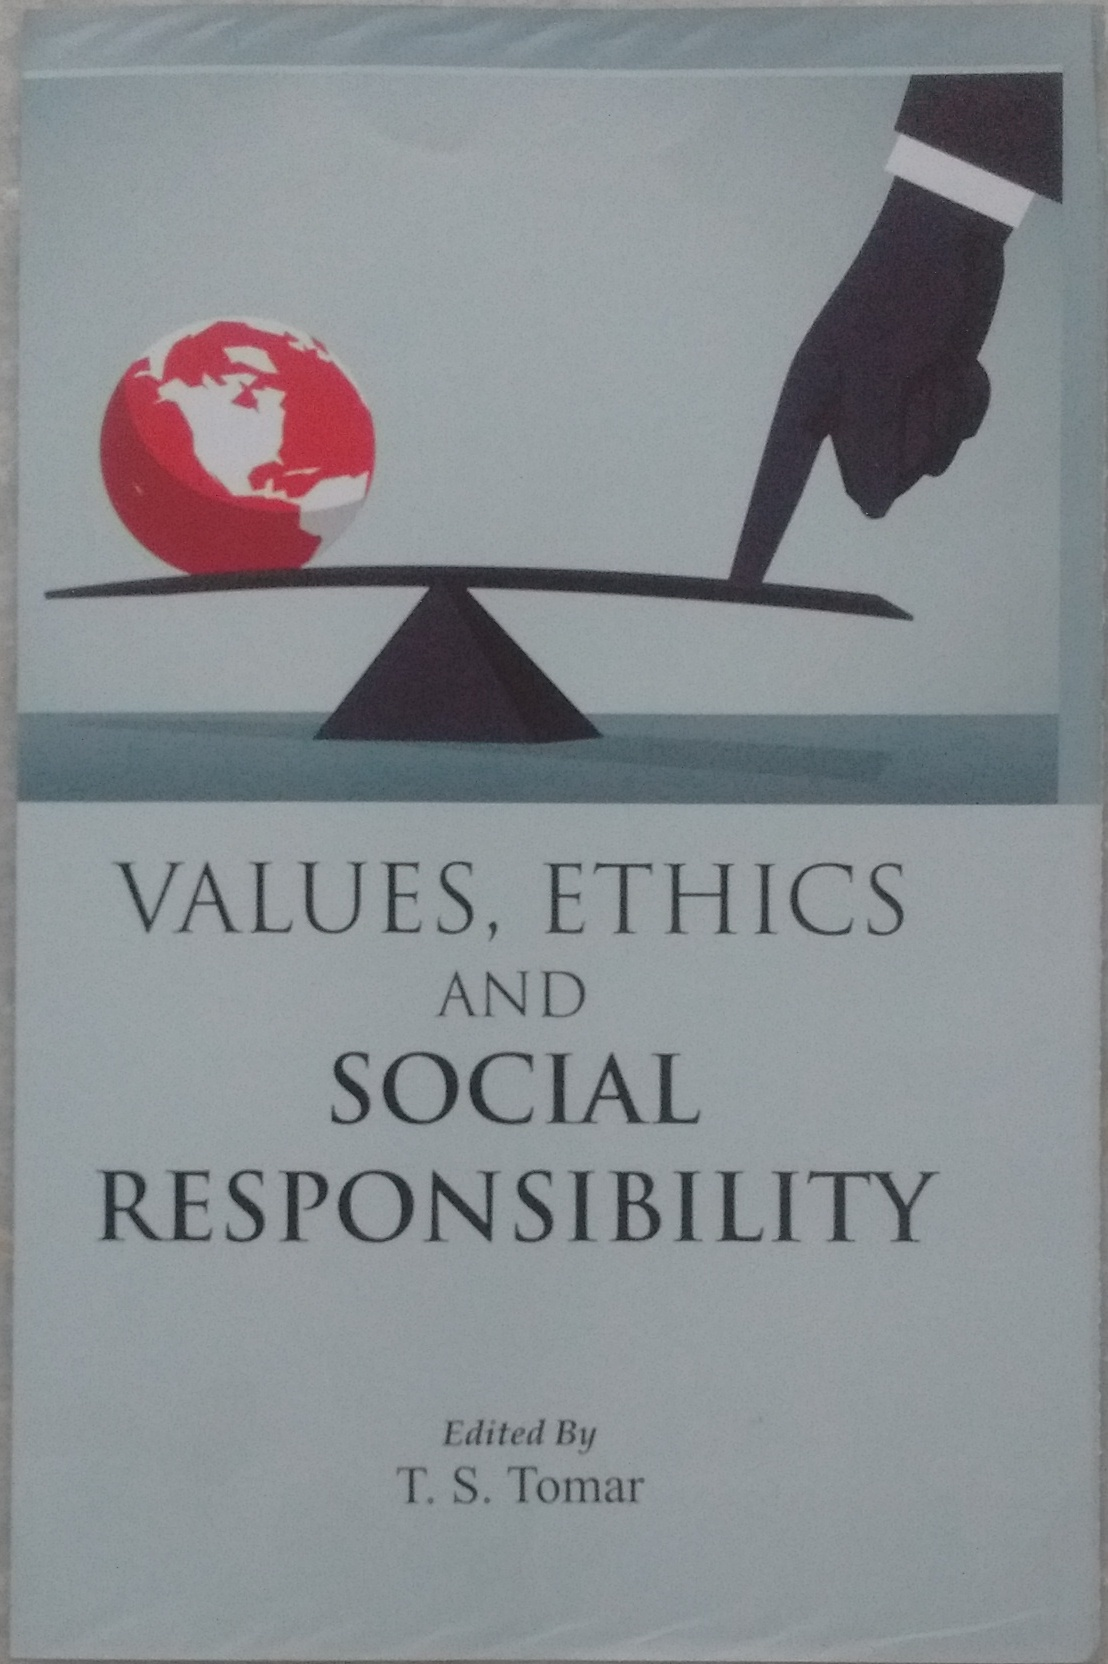 Values, Ethics and Social Responsibility - Indian books and